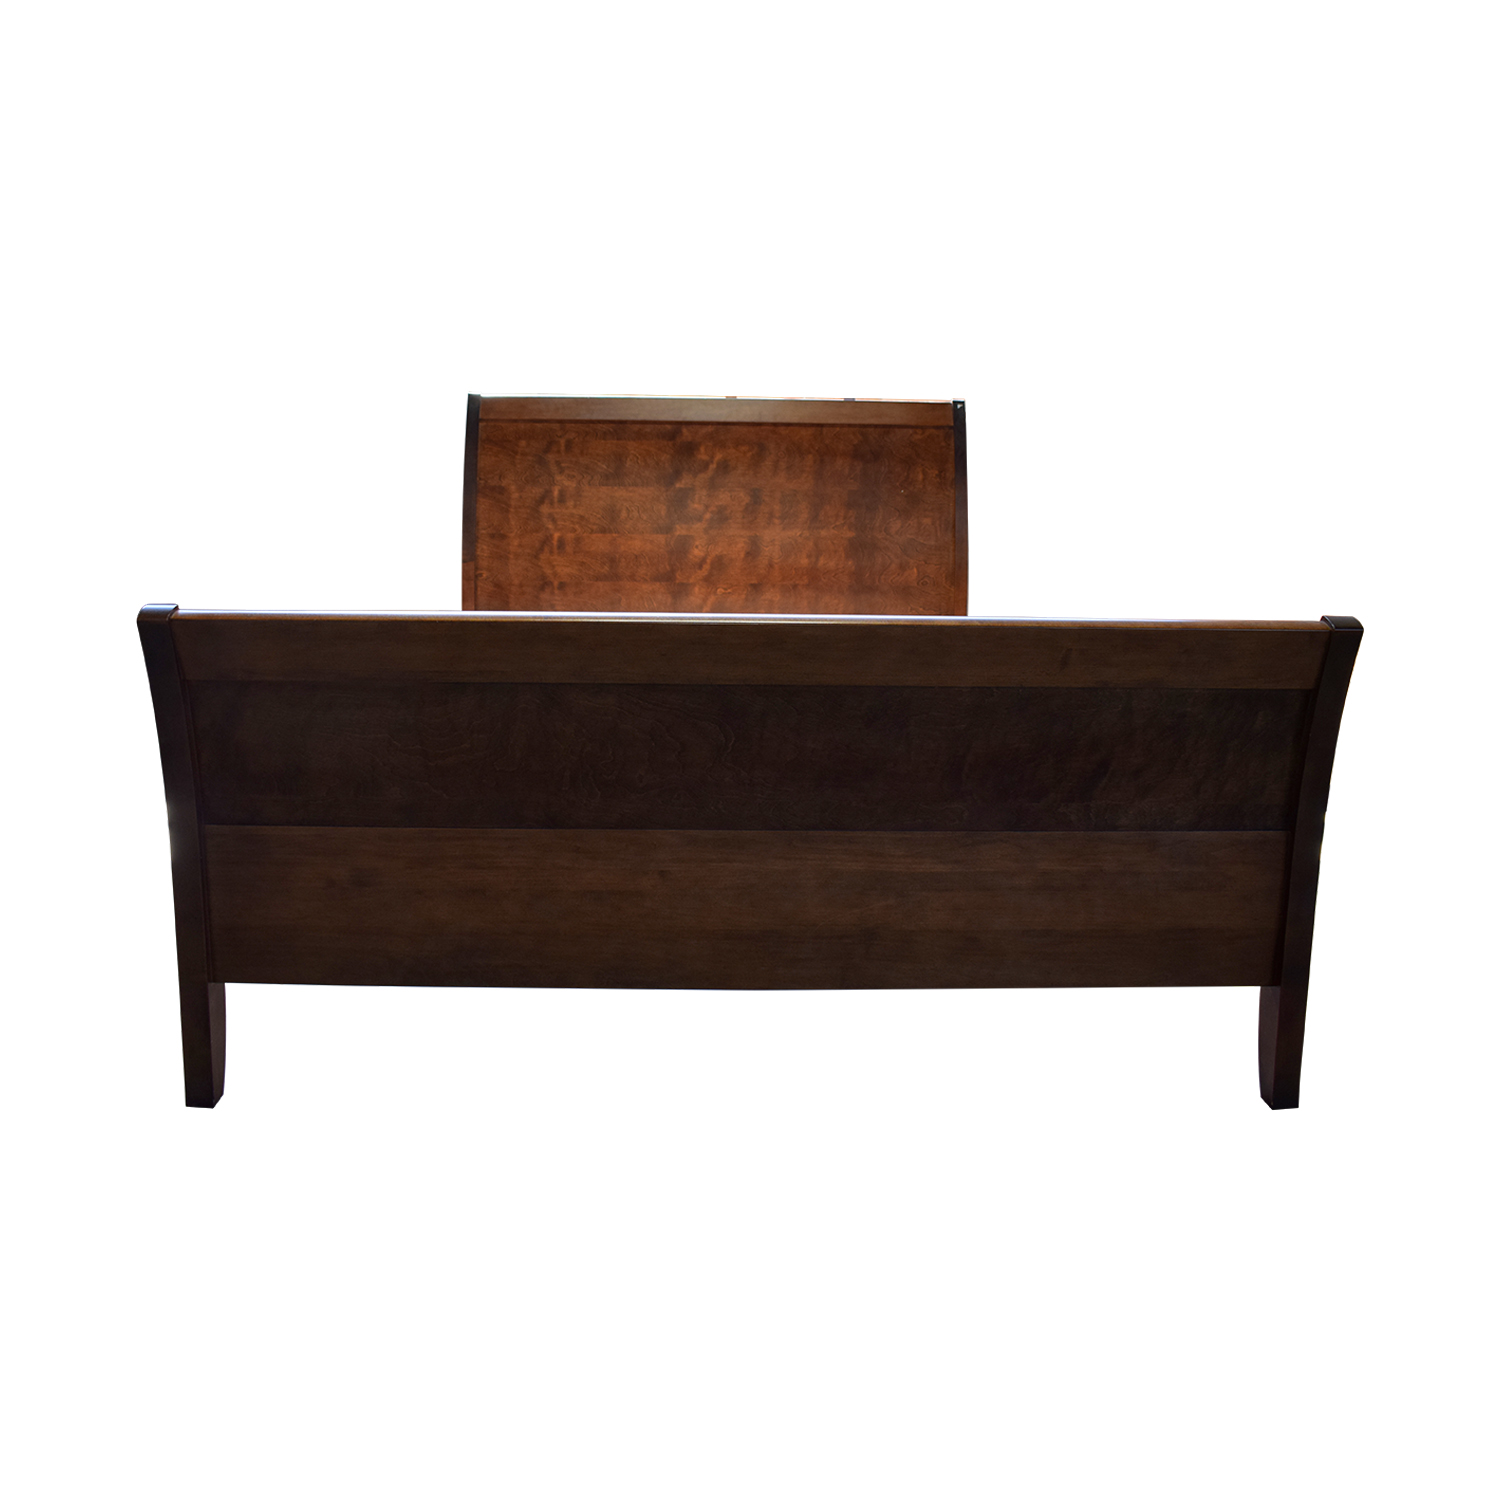 jensen lewis sleeper sofa price cb2 piazza reviews 90 off baronet java mahogany sleigh queen bed frame second hand